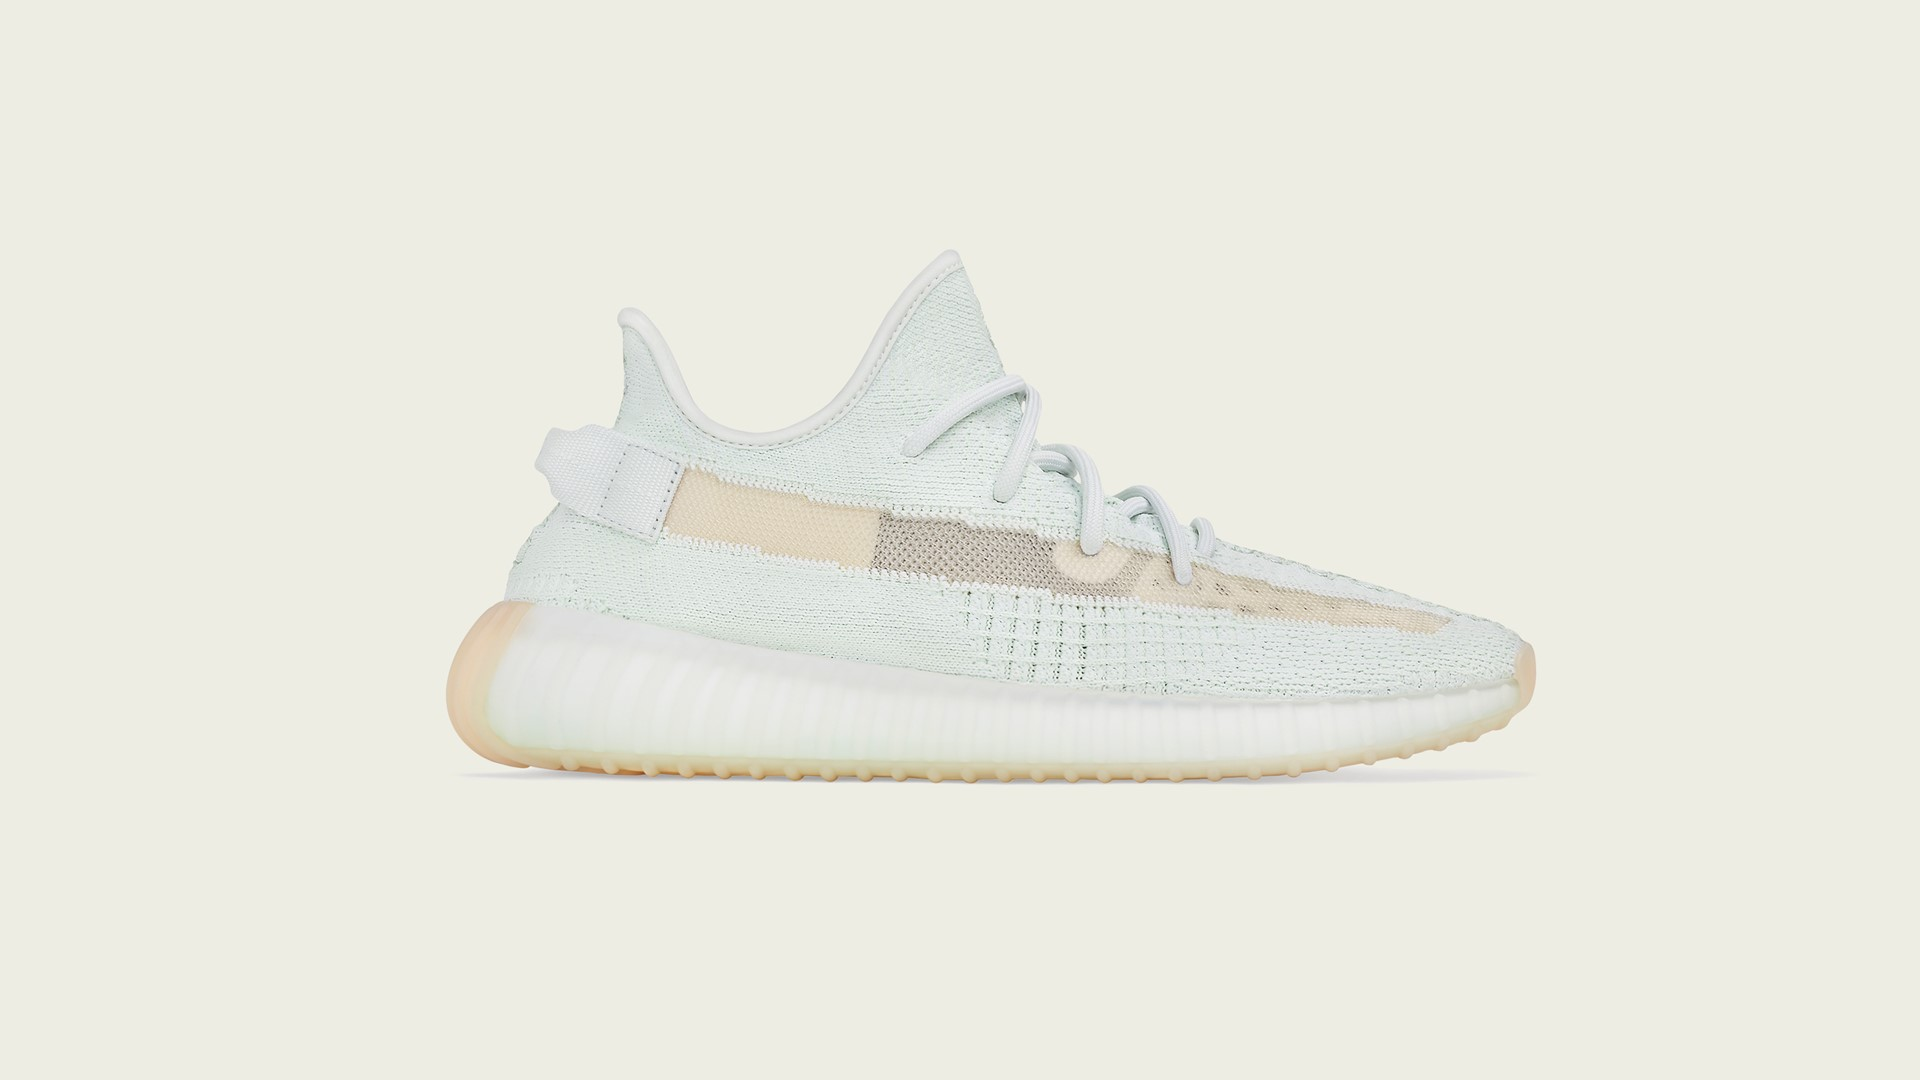 adidas + KANYE WEST announce the YEEZY BOOST 350 V2 Hyperspace